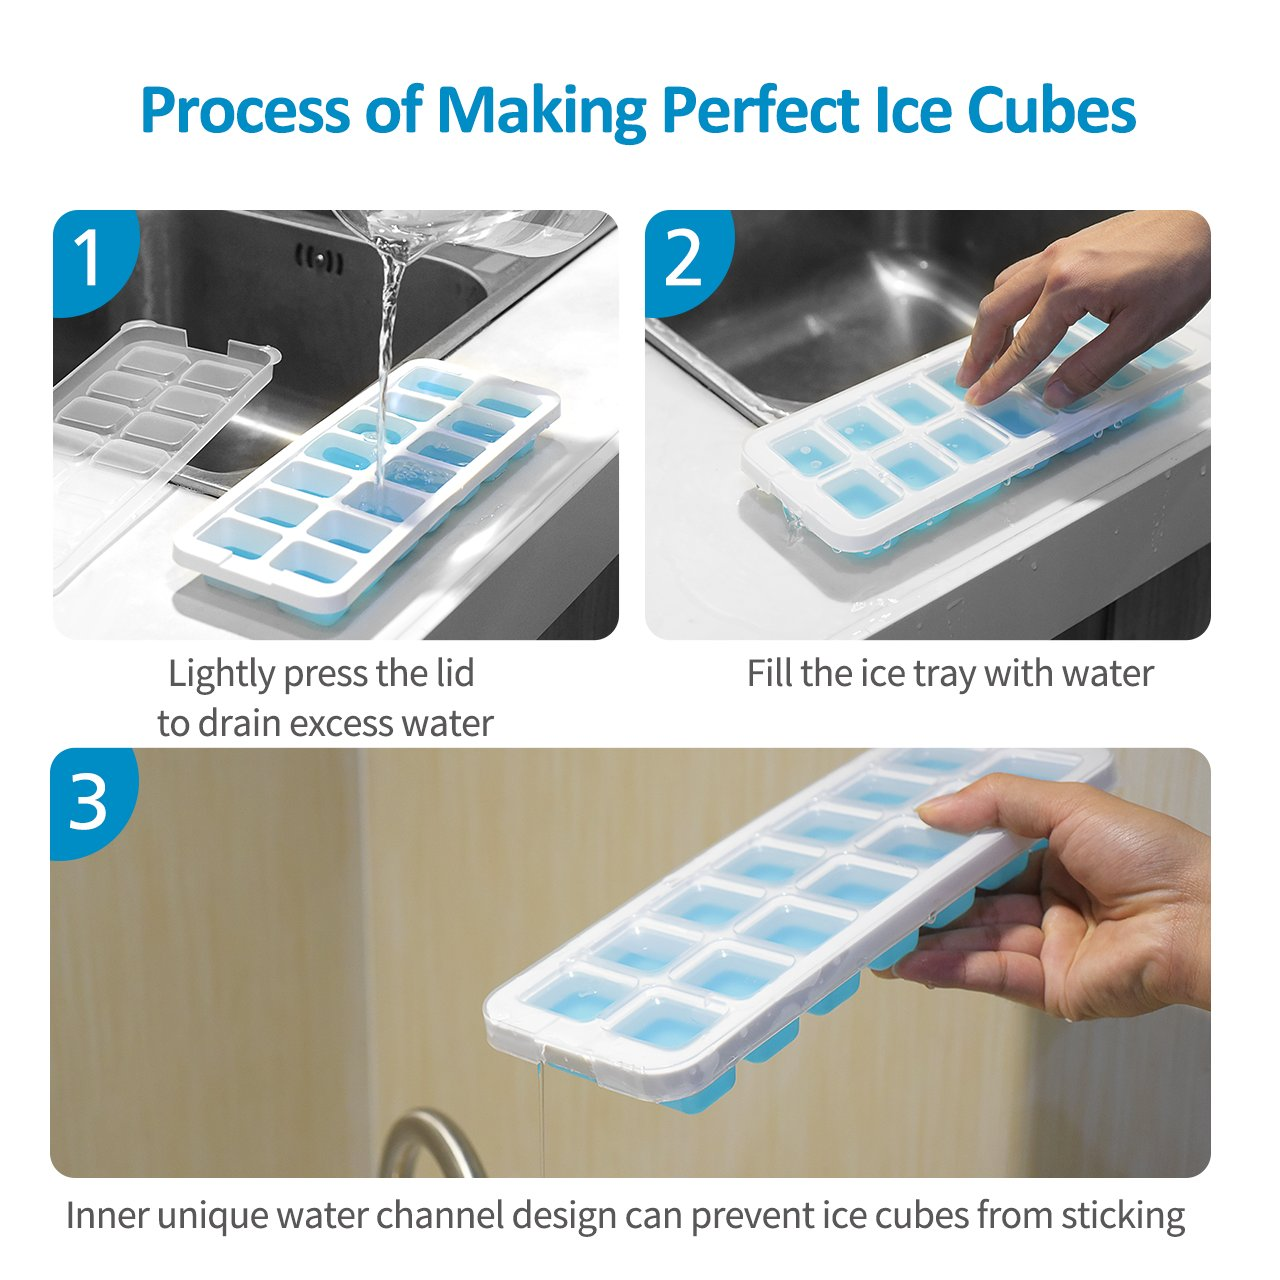 OMorc Ice Cube Trays 4 Pack [Upgraded Version], Easy-Release Silicone and Flexible 14-Ice Trays with Unique Removable Lid, Make Larger Ice Cubes, BPA Free, Stackable Durable and Dishwasher Safe by OMORC (Image #5)